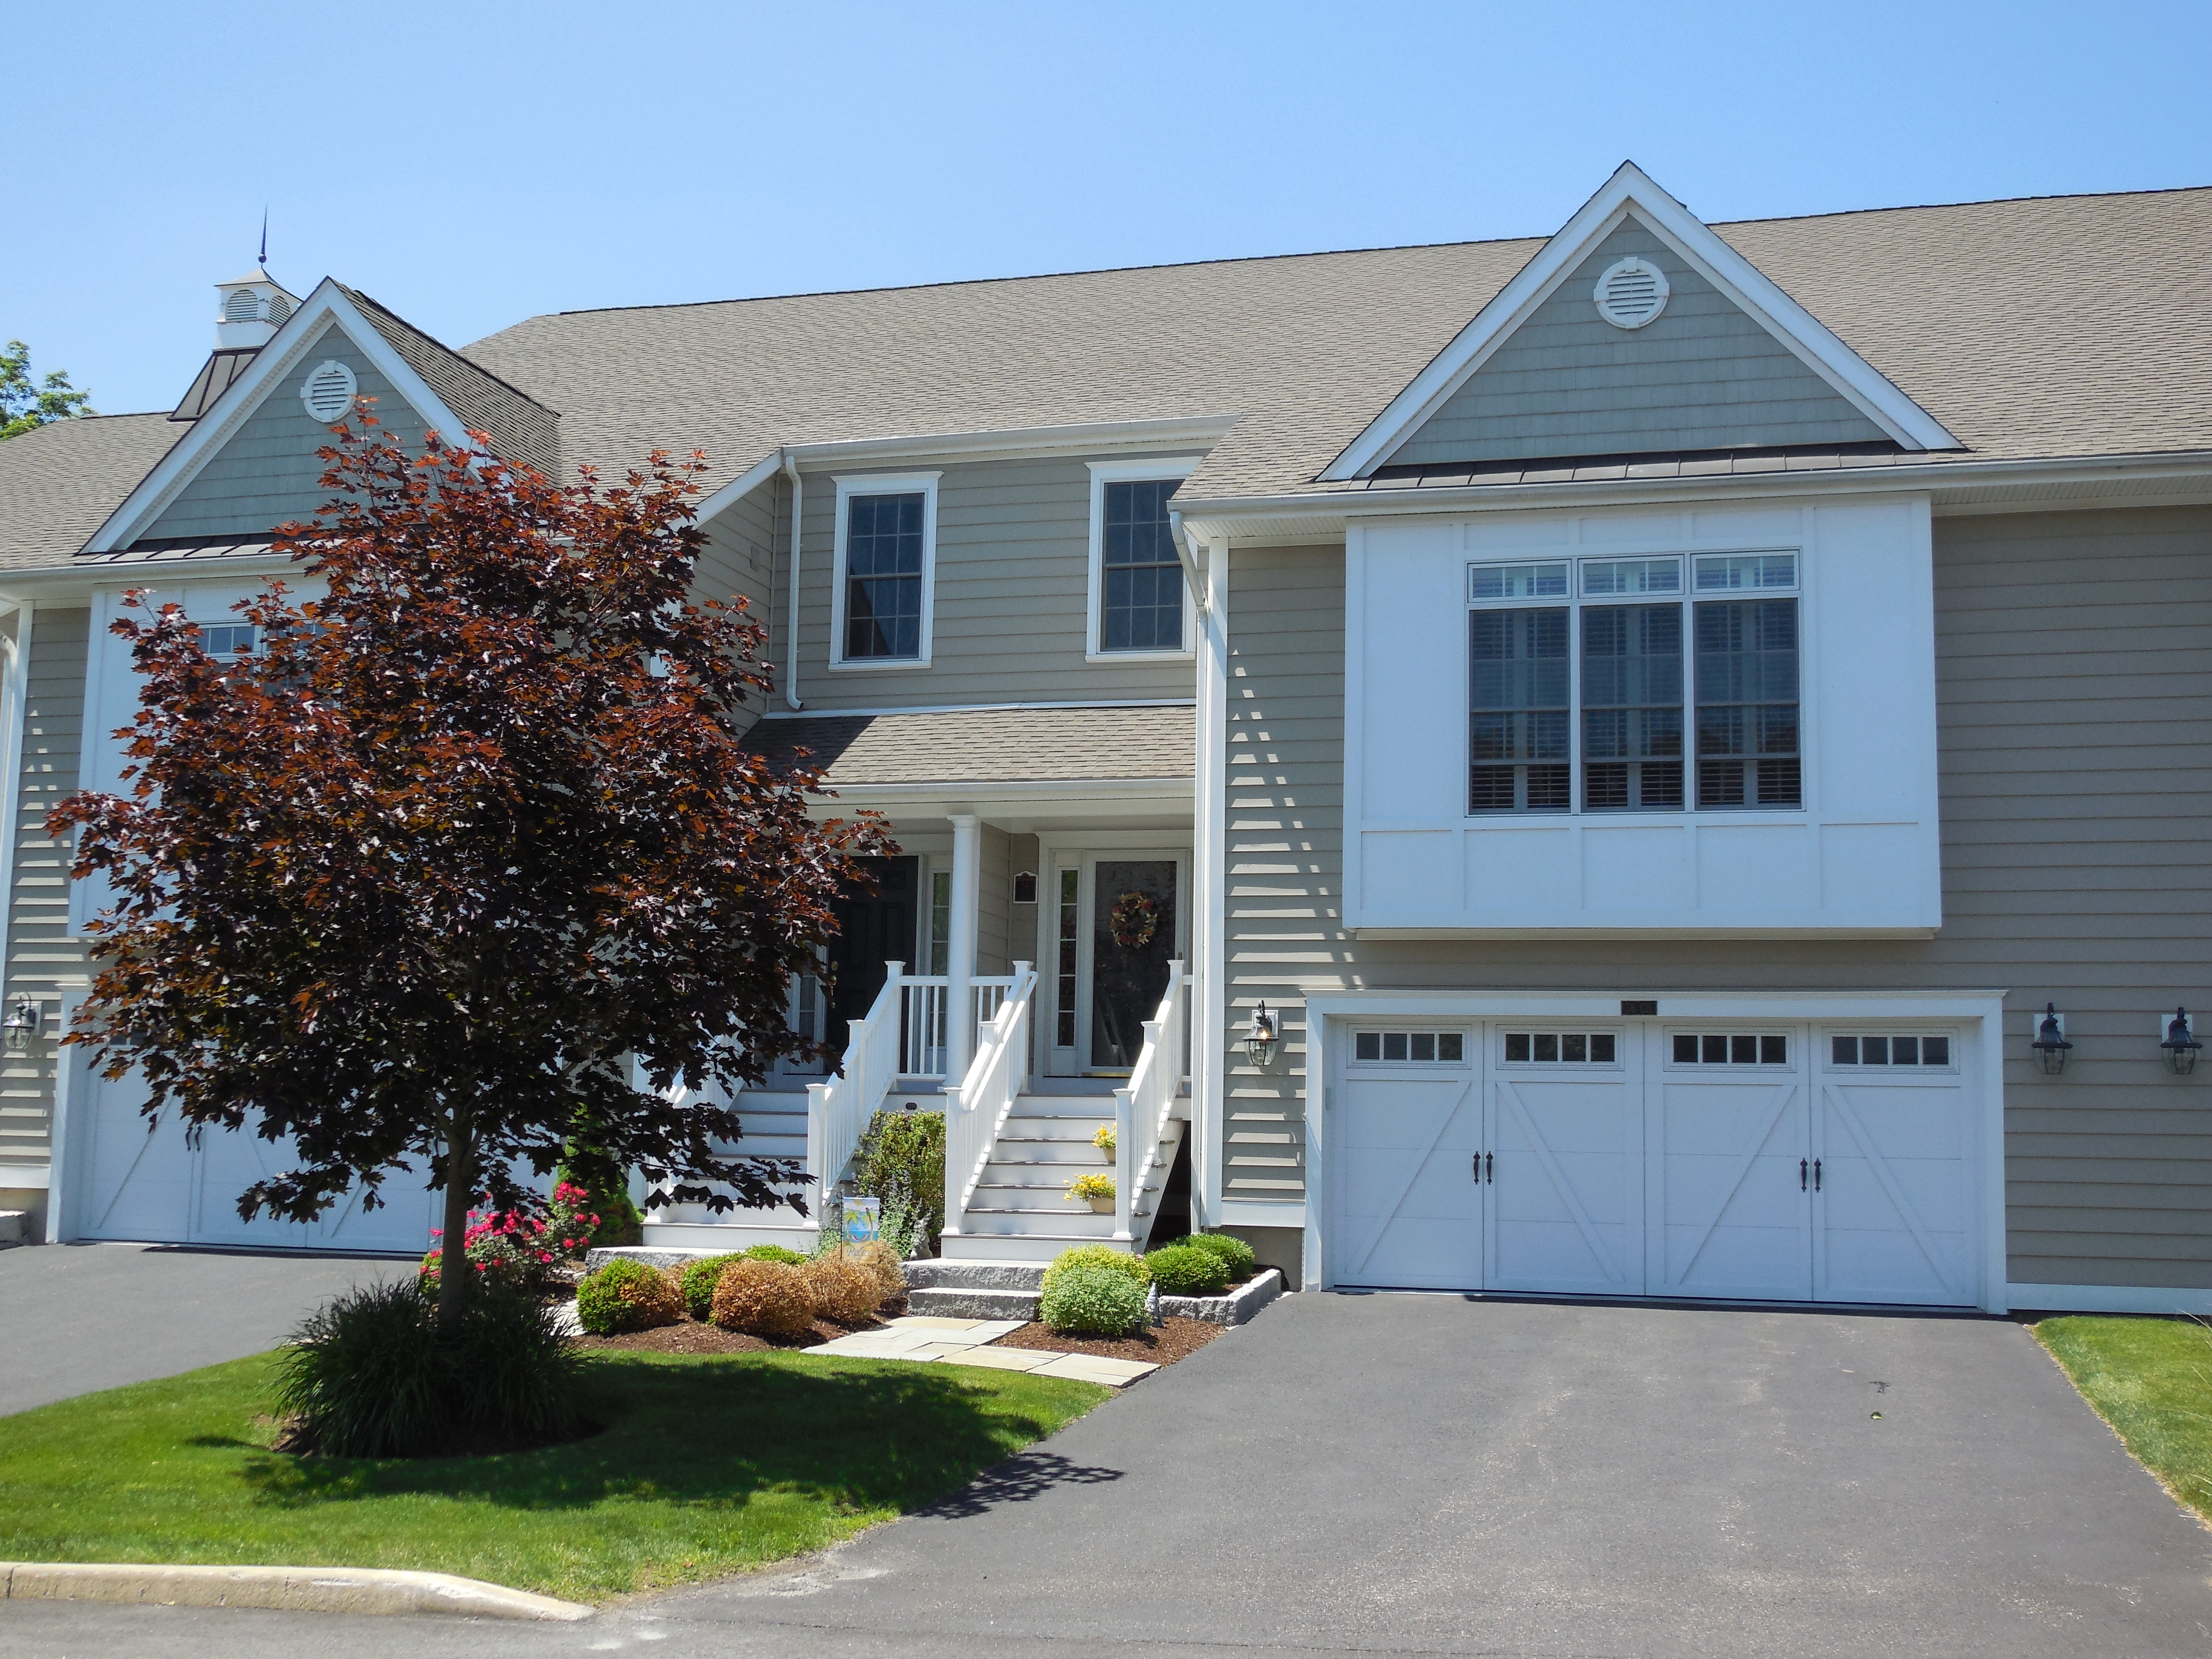 Townhouse for Sale at Stunning Newbury Village Townhouse 36 Great Heron Lane 36 Brookfield, Connecticut 06804 United States